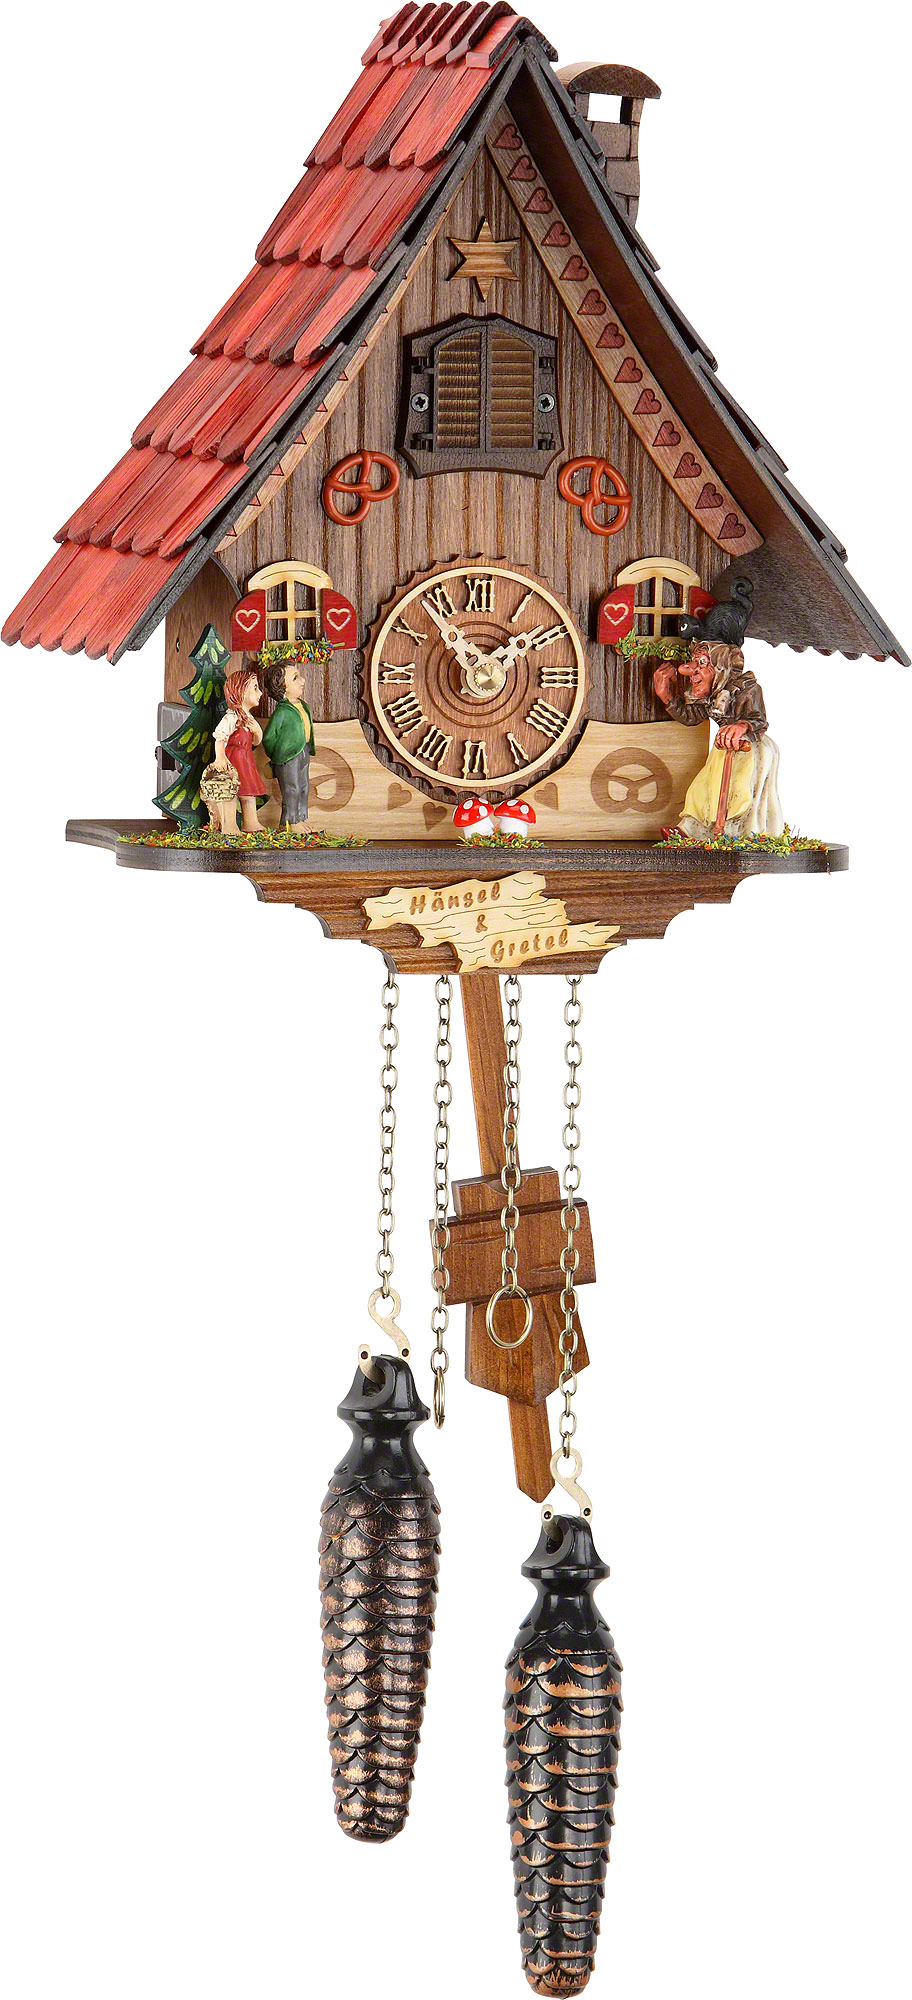 cuckoo clock instructions with Cuckoo Clock Quartz Movement Chalet Style 24cm By Trenkle Uhren  896 on 1526 furthermore Black White Alarm Clock likewise Stock Photo Triberg Im Schwarzwald Watch Shop On The Main Road With The Worlds 126191117 furthermore Cuckoo Clock 8 Day Movement Chalet Style 34cm By Cuckoo Palace  1033 further Cuckoo Clock Quartz Movement Chalet Style 24cm By Trenkle Uhren  896.